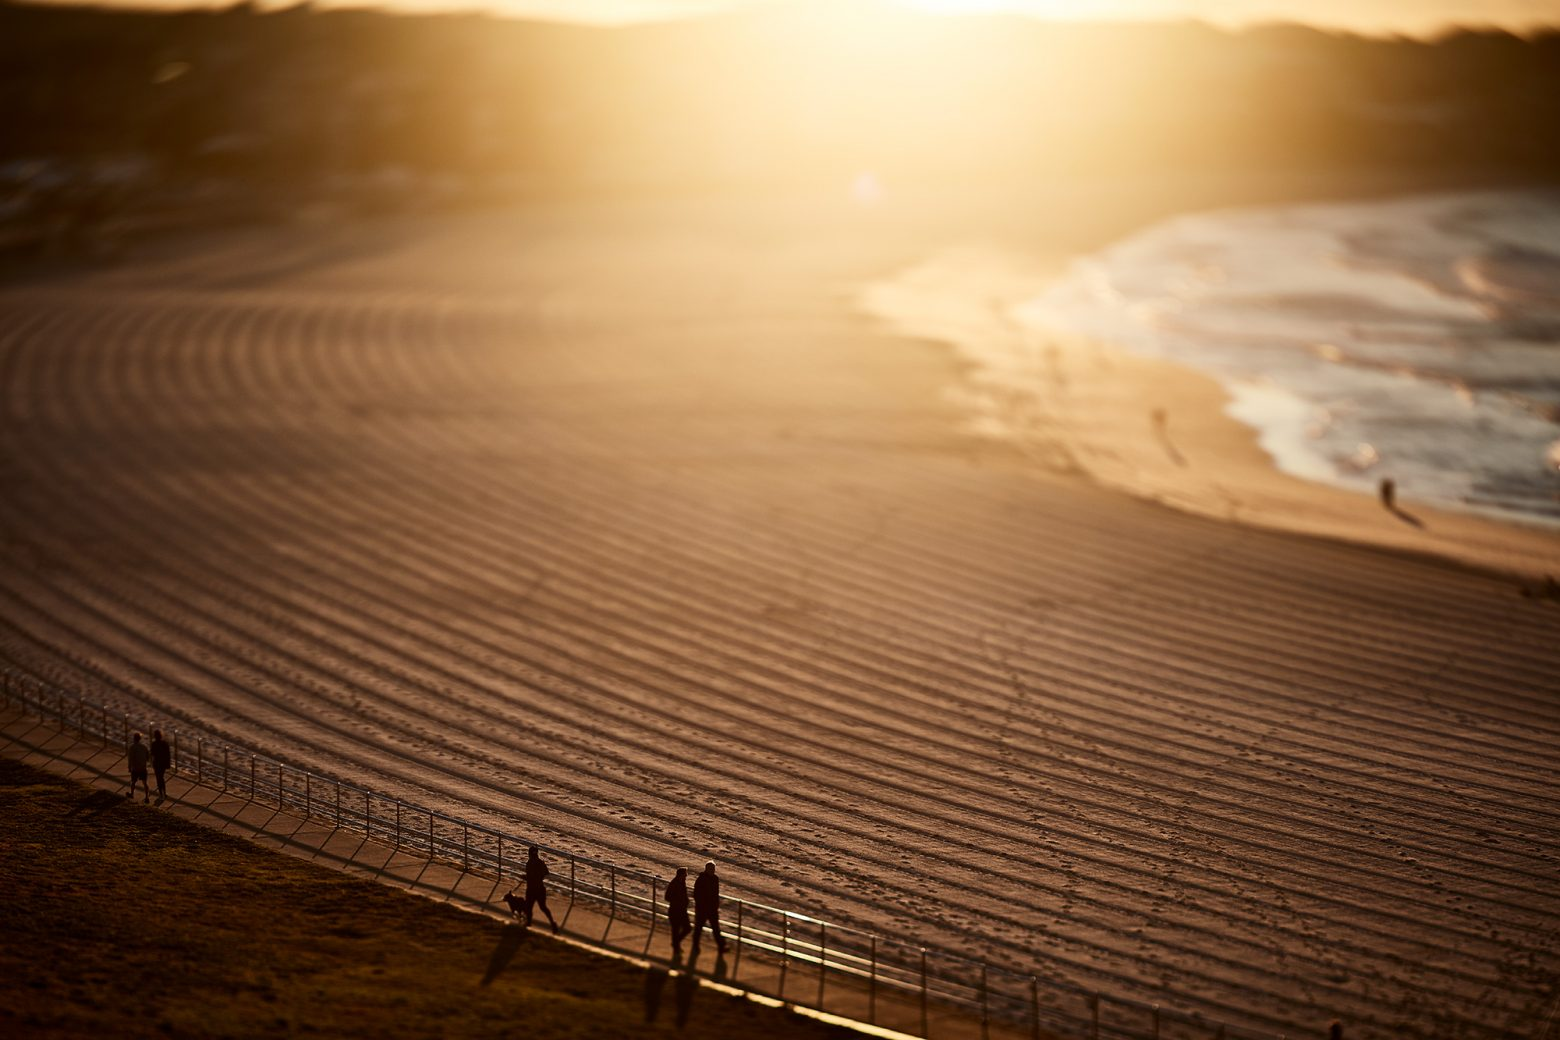 Morning walkers and some crazy sand lines